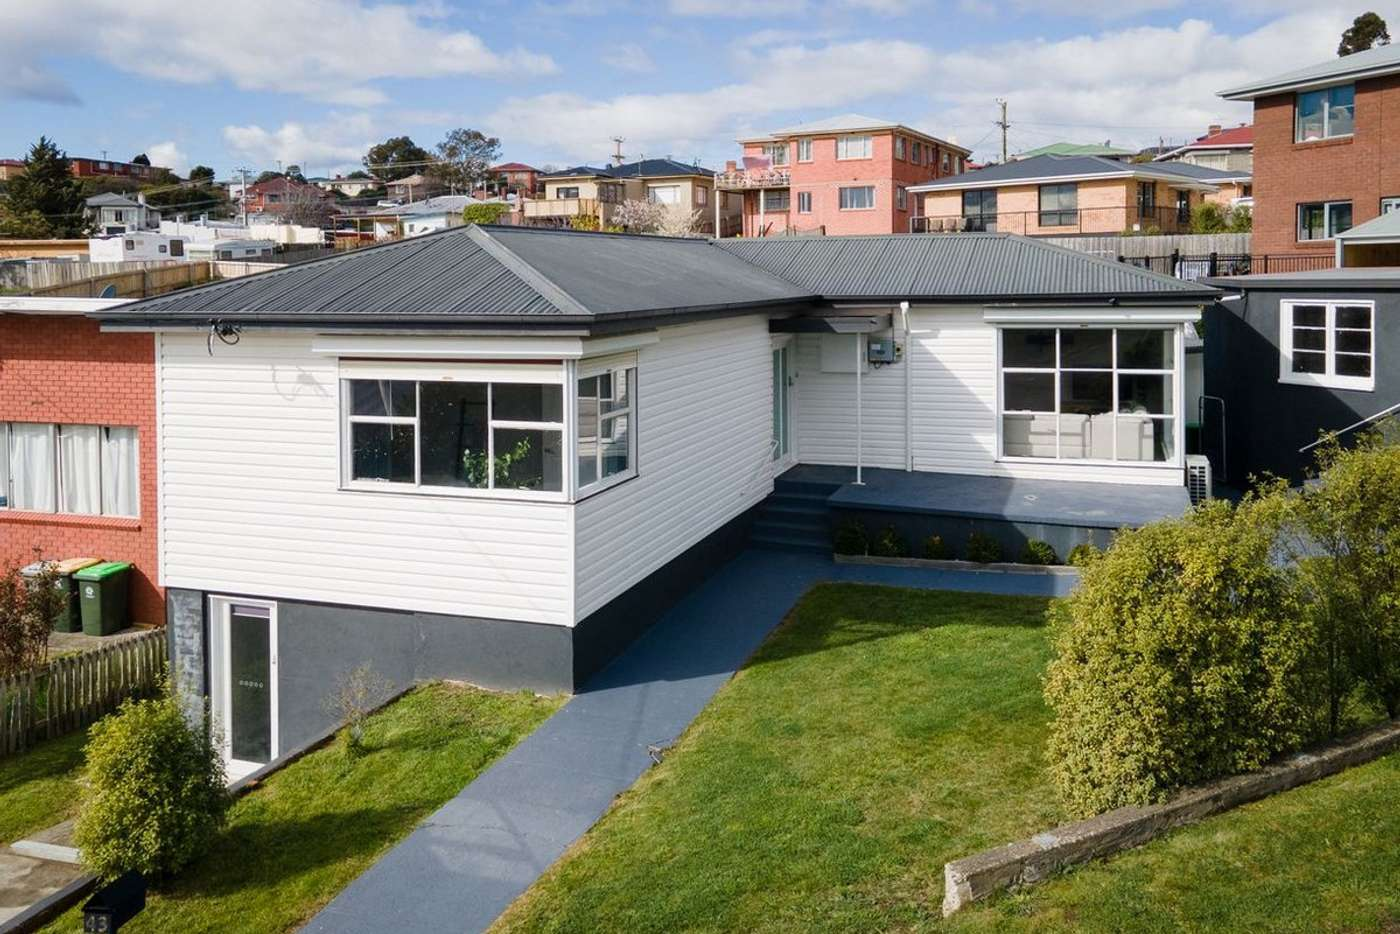 Main view of Homely house listing, 43 Easton Avenue, West Moonah TAS 7009